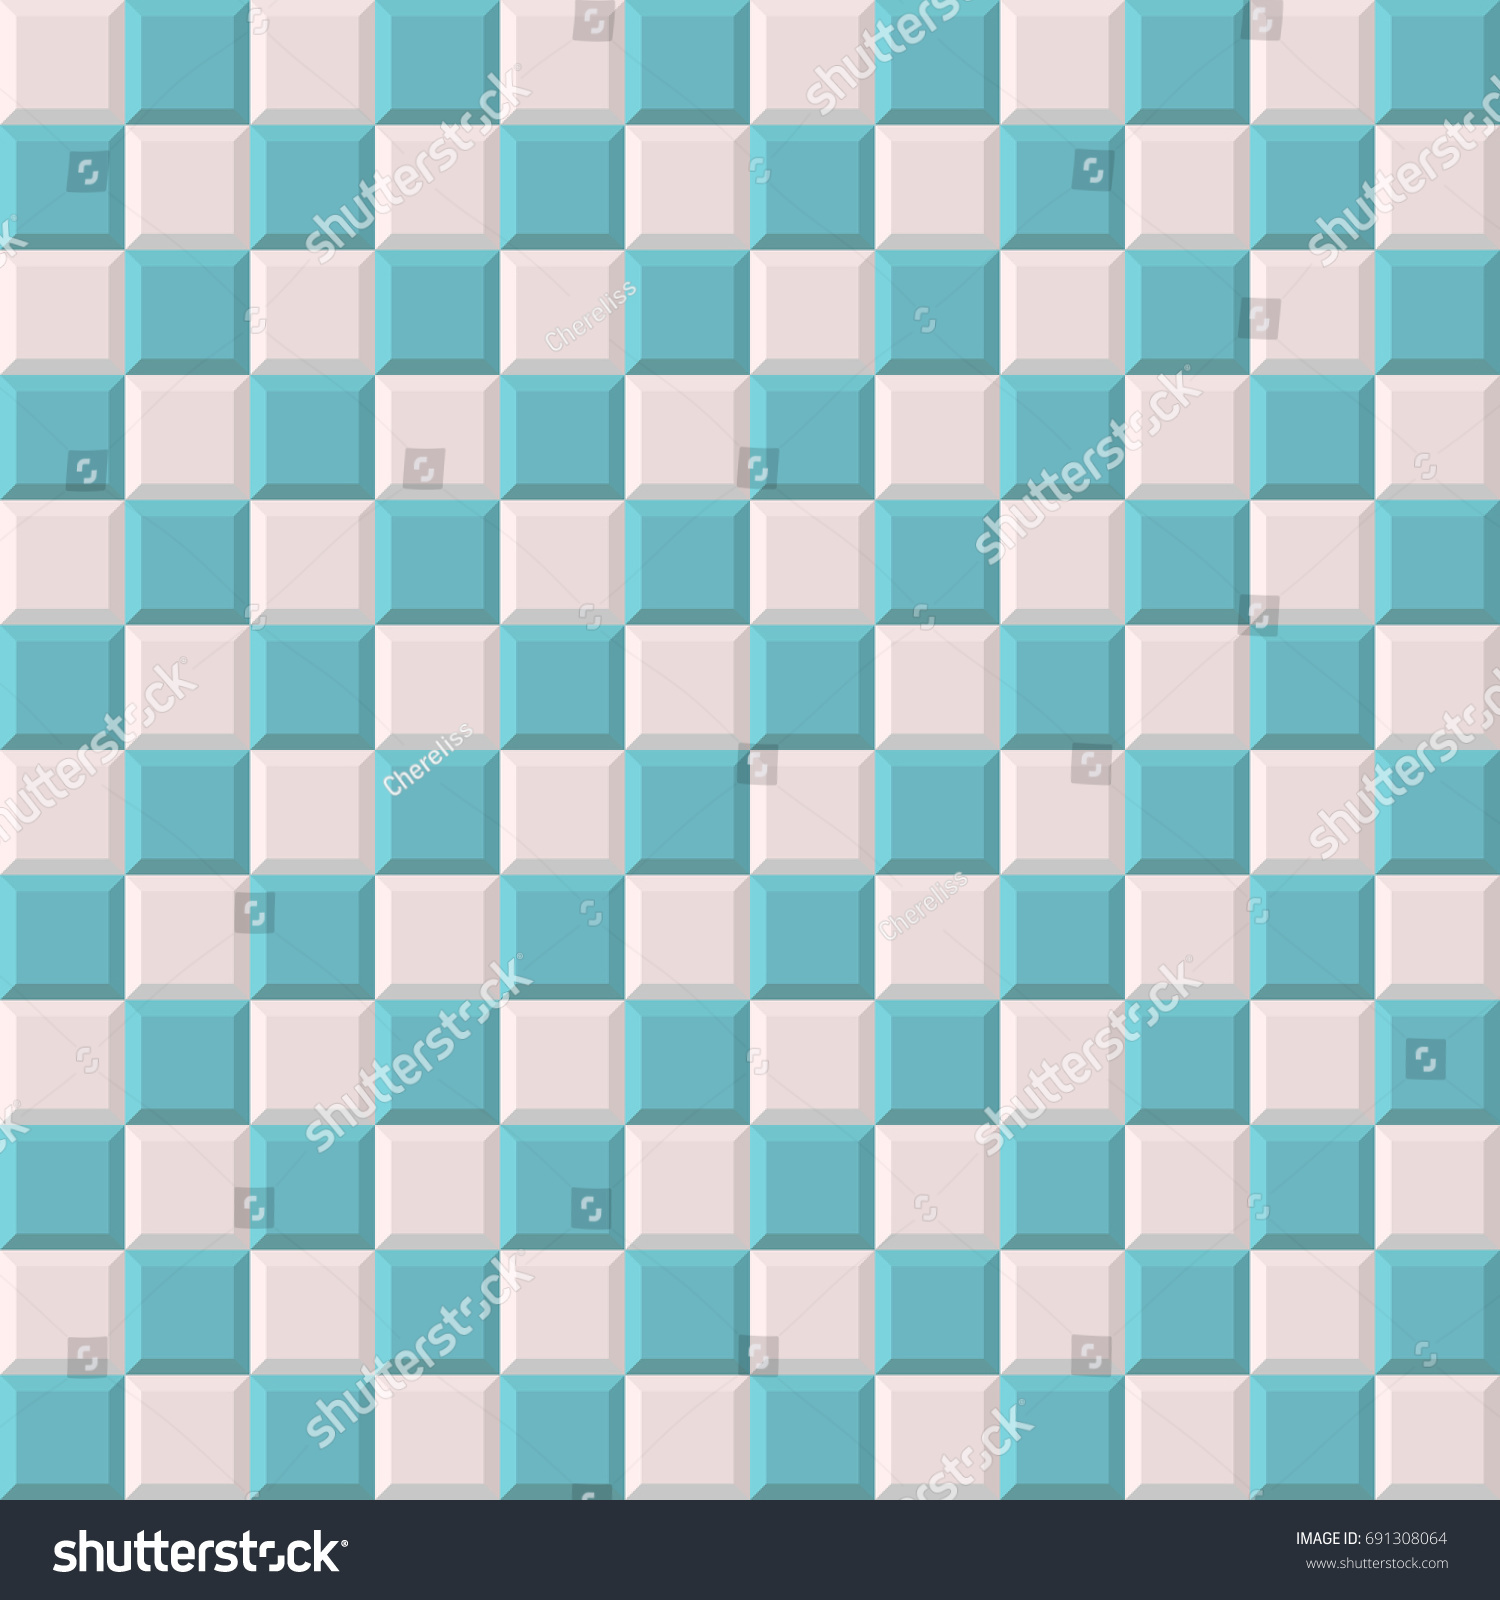 blue and white mosaic tile texture vector seamless pattern abstract background